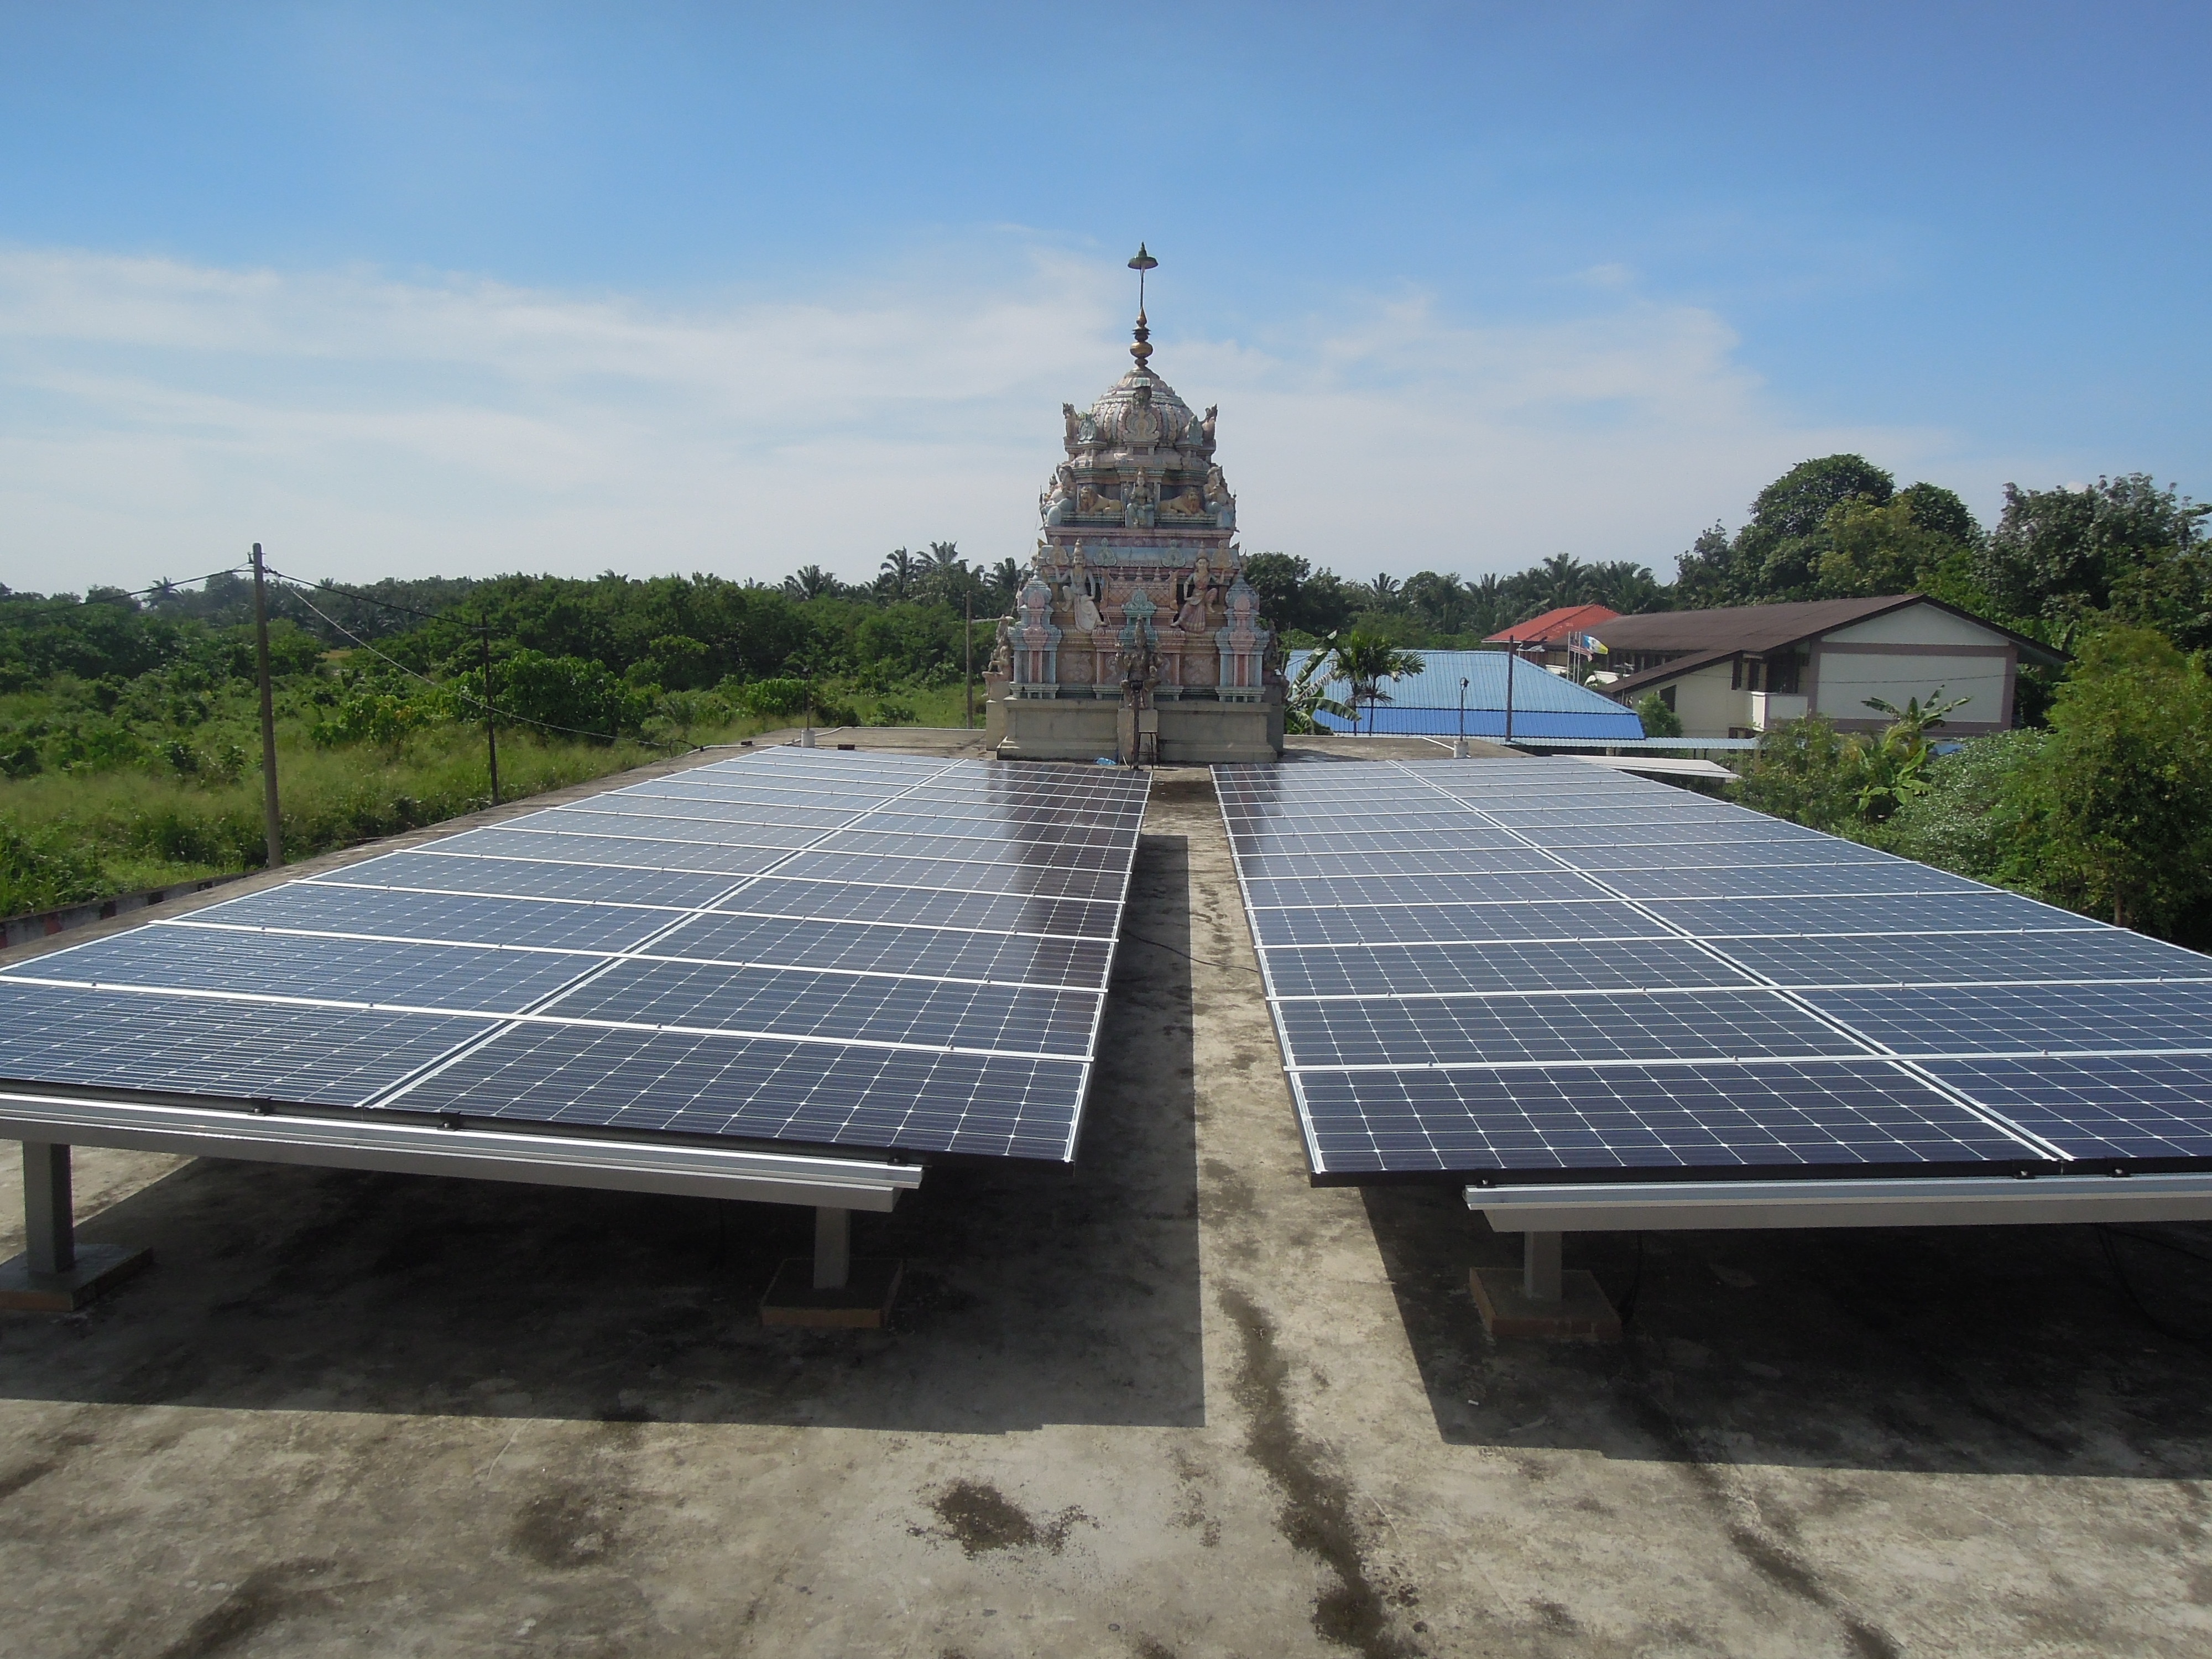 Solar PV Roof Community Indian Temple Nibong Tebal Penang 12kW